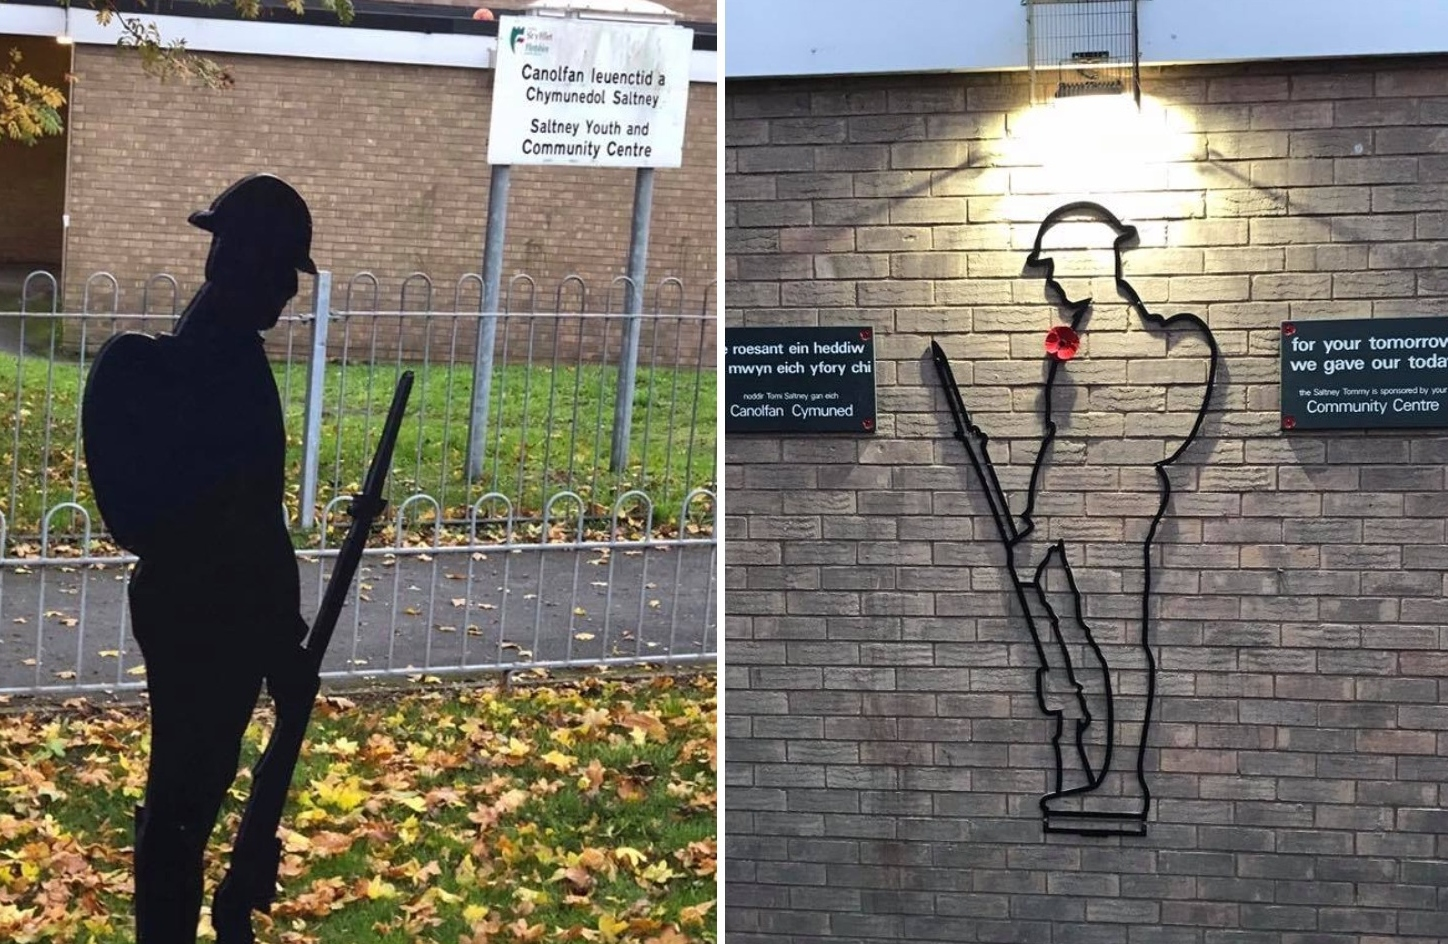 First World War 'Tommy' silhouette commemoration in Saltney surrounded in controversy